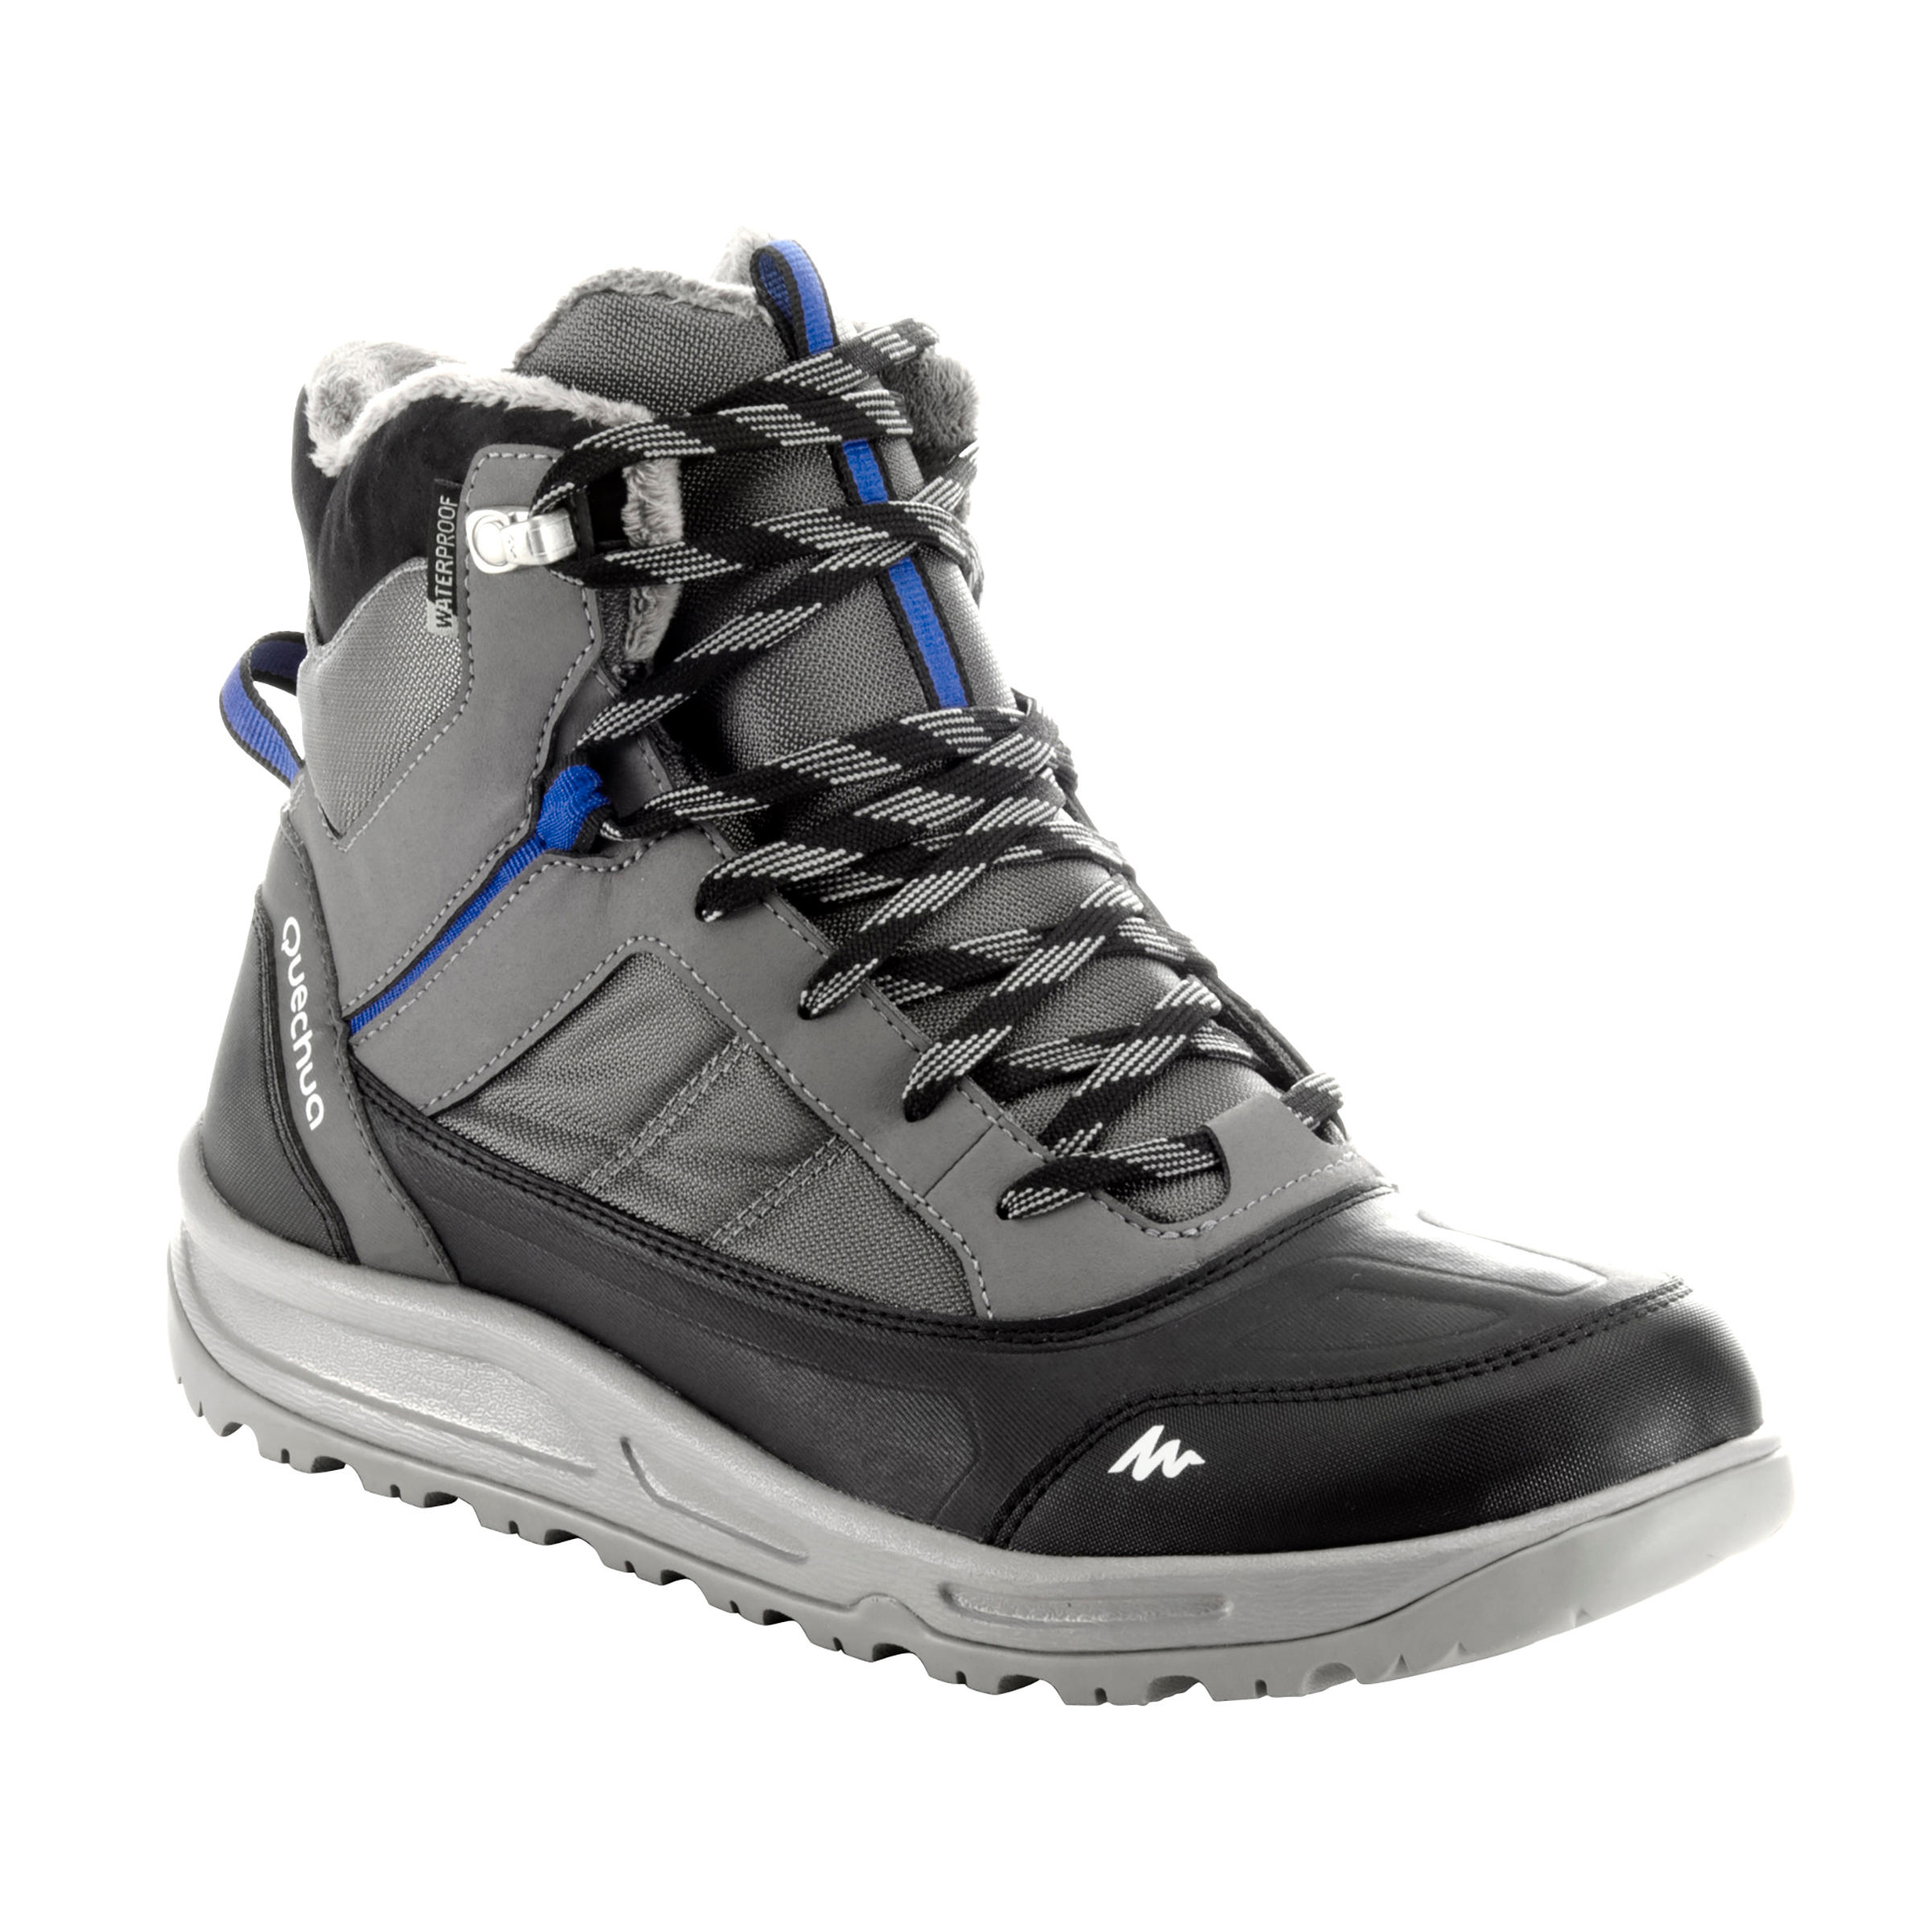 SH120 Warm Mid Men's Snow Hiking Shoes - Grey.